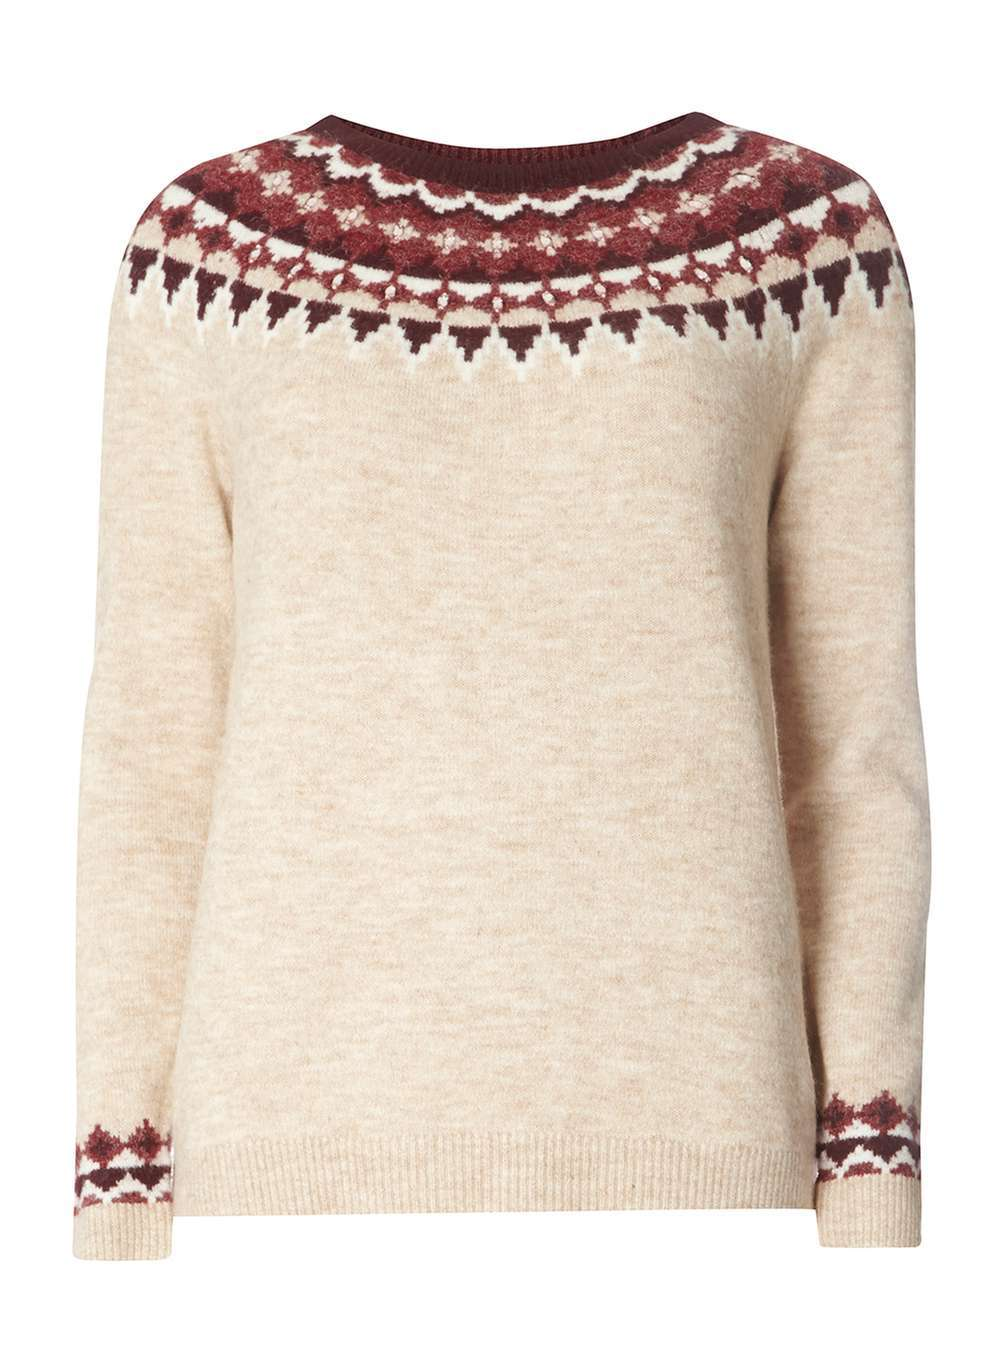 Womens Oatmeal Embellished Fairisle Jumper Beige - neckline: round neck; style: standard; predominant colour: ivory/cream; occasions: casual, creative work; length: standard; fibres: acrylic - mix; fit: standard fit; pattern: fairisle; sleeve length: long sleeve; sleeve style: standard; texture group: knits/crochet; pattern type: knitted - fine stitch; pattern size: standard; season: a/w 2016; wardrobe: highlight